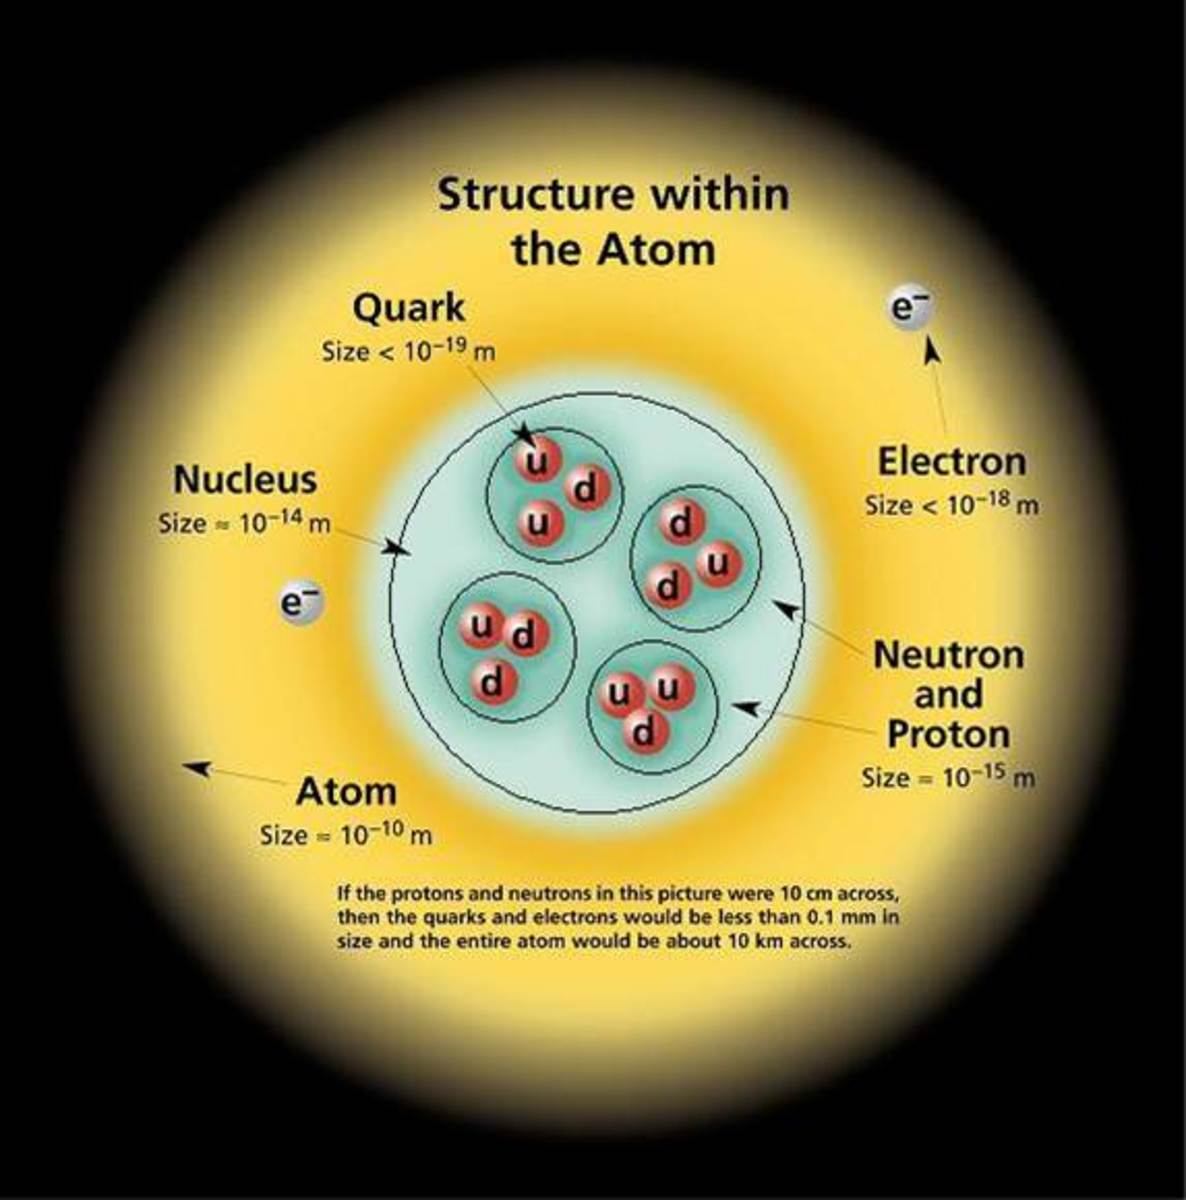 Structure within an atom